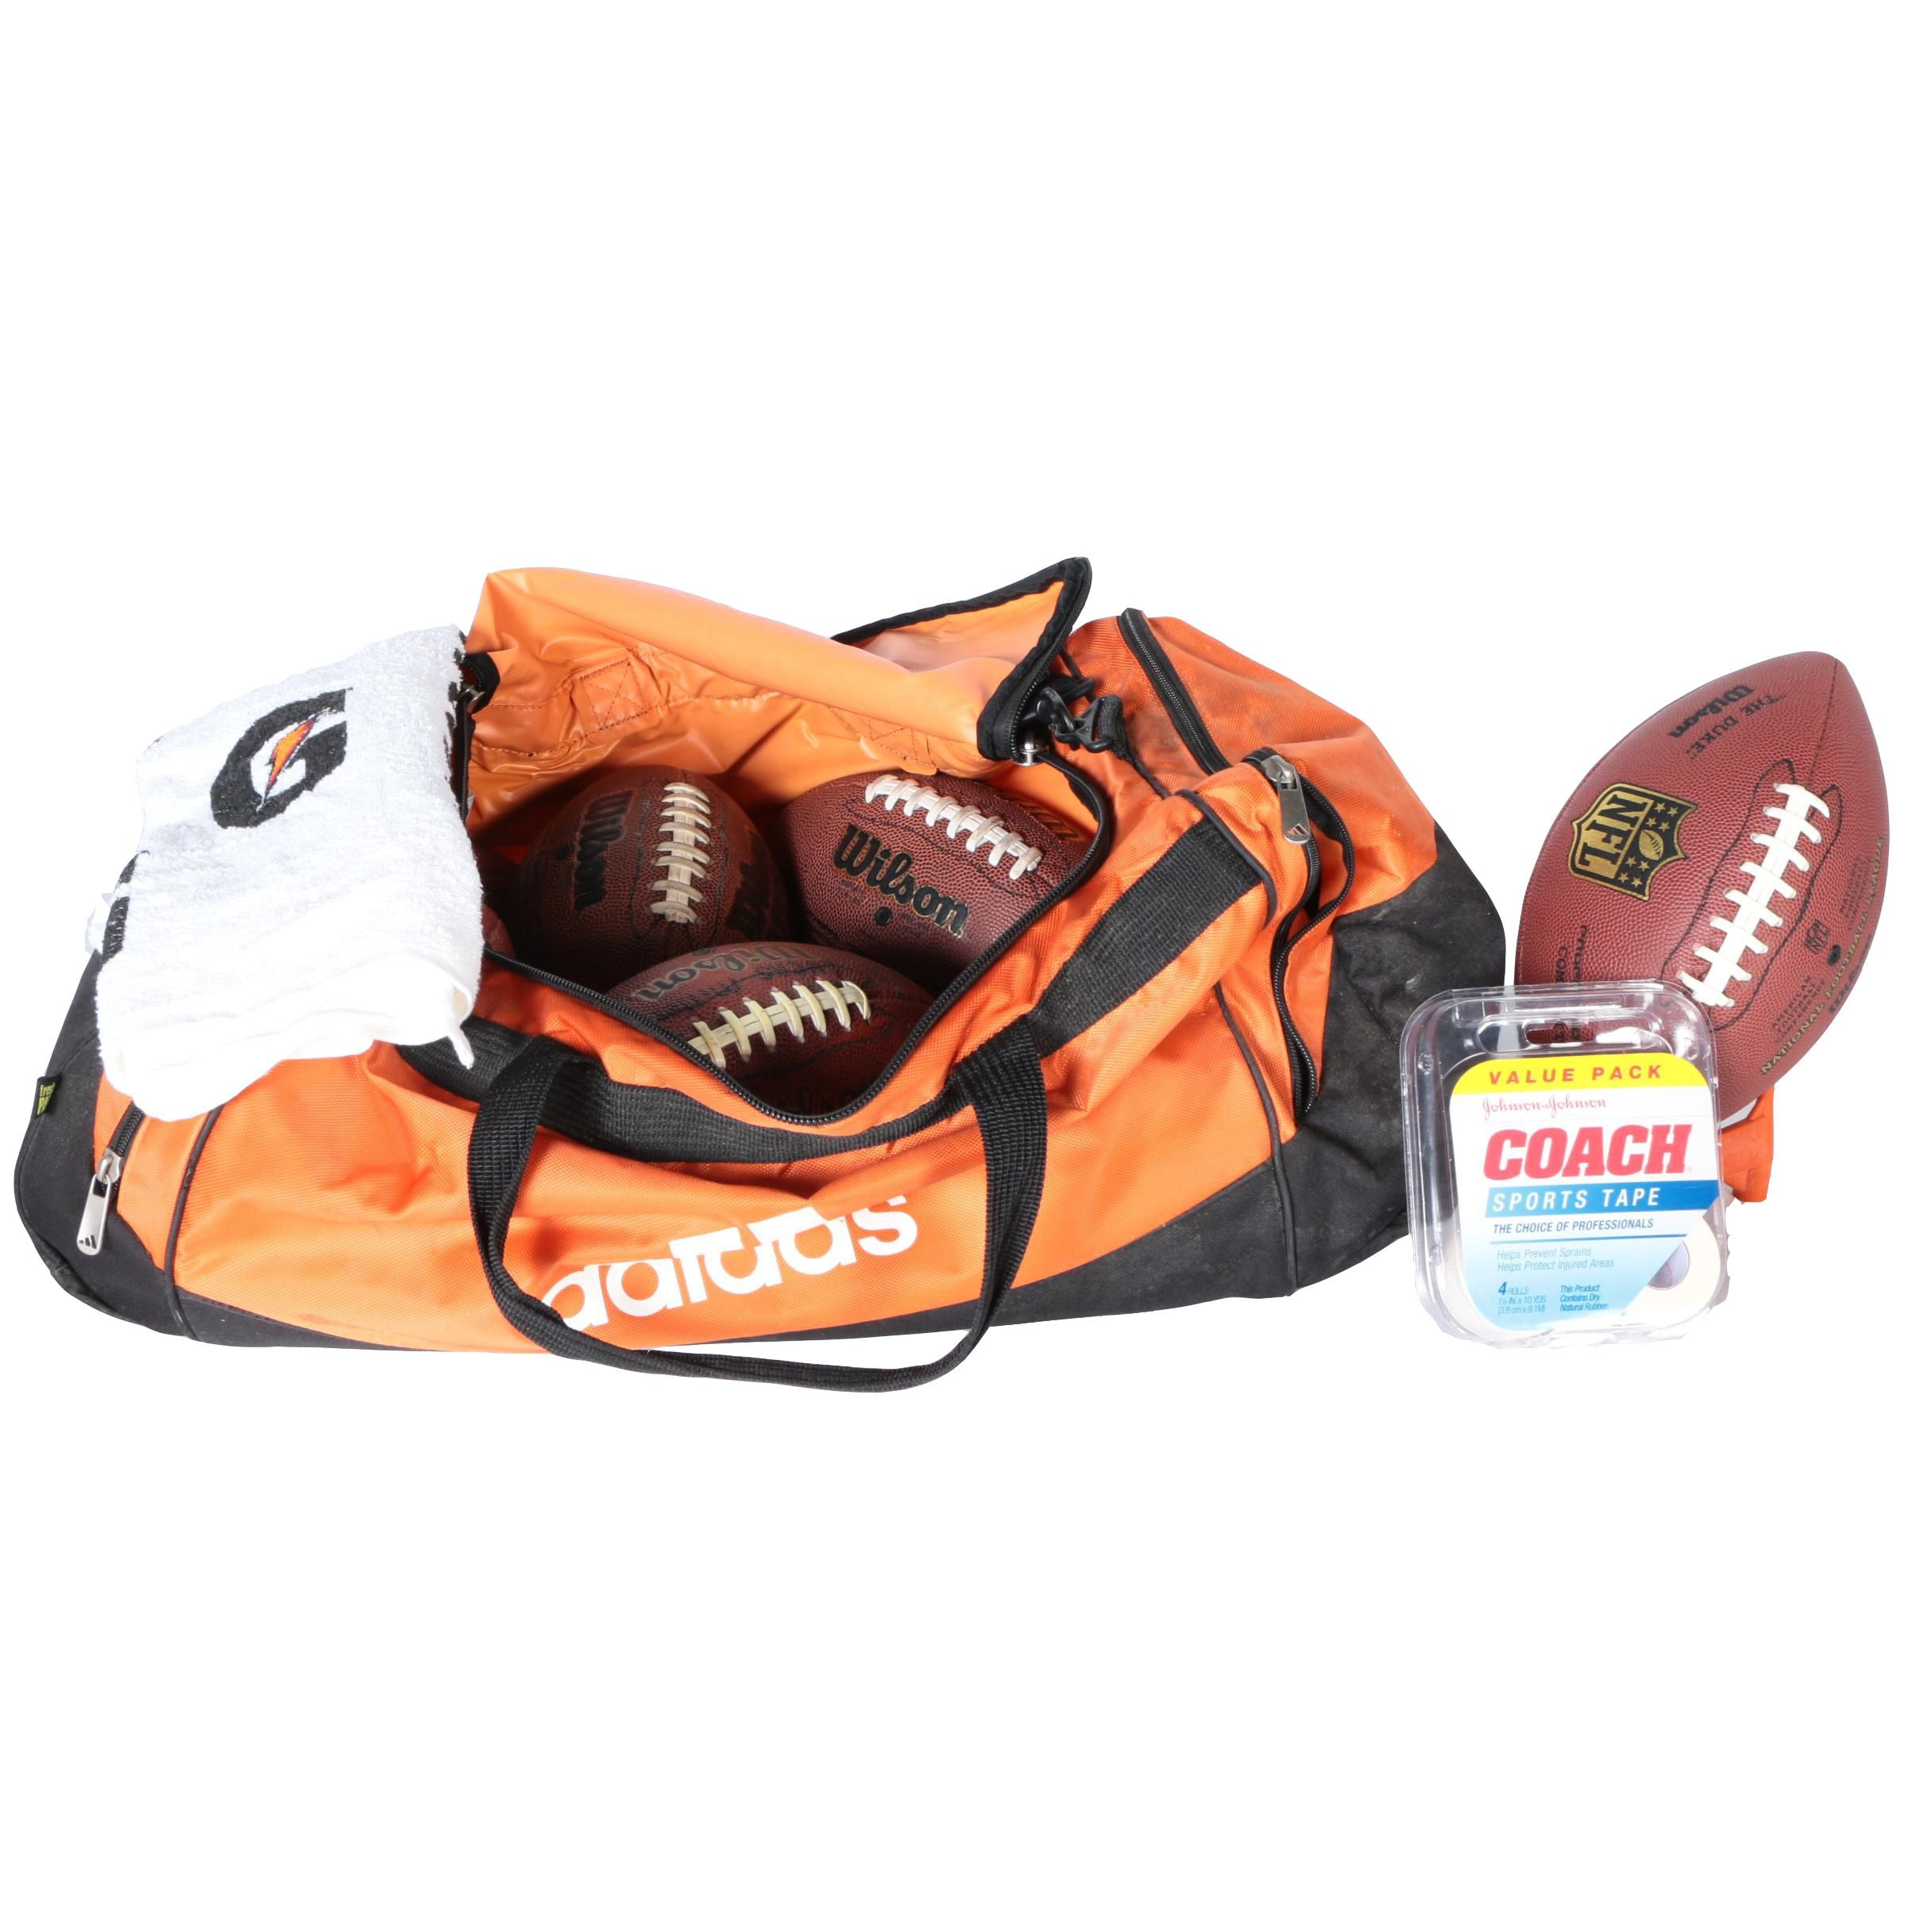 Adidas Bag with Footballs and Accessories